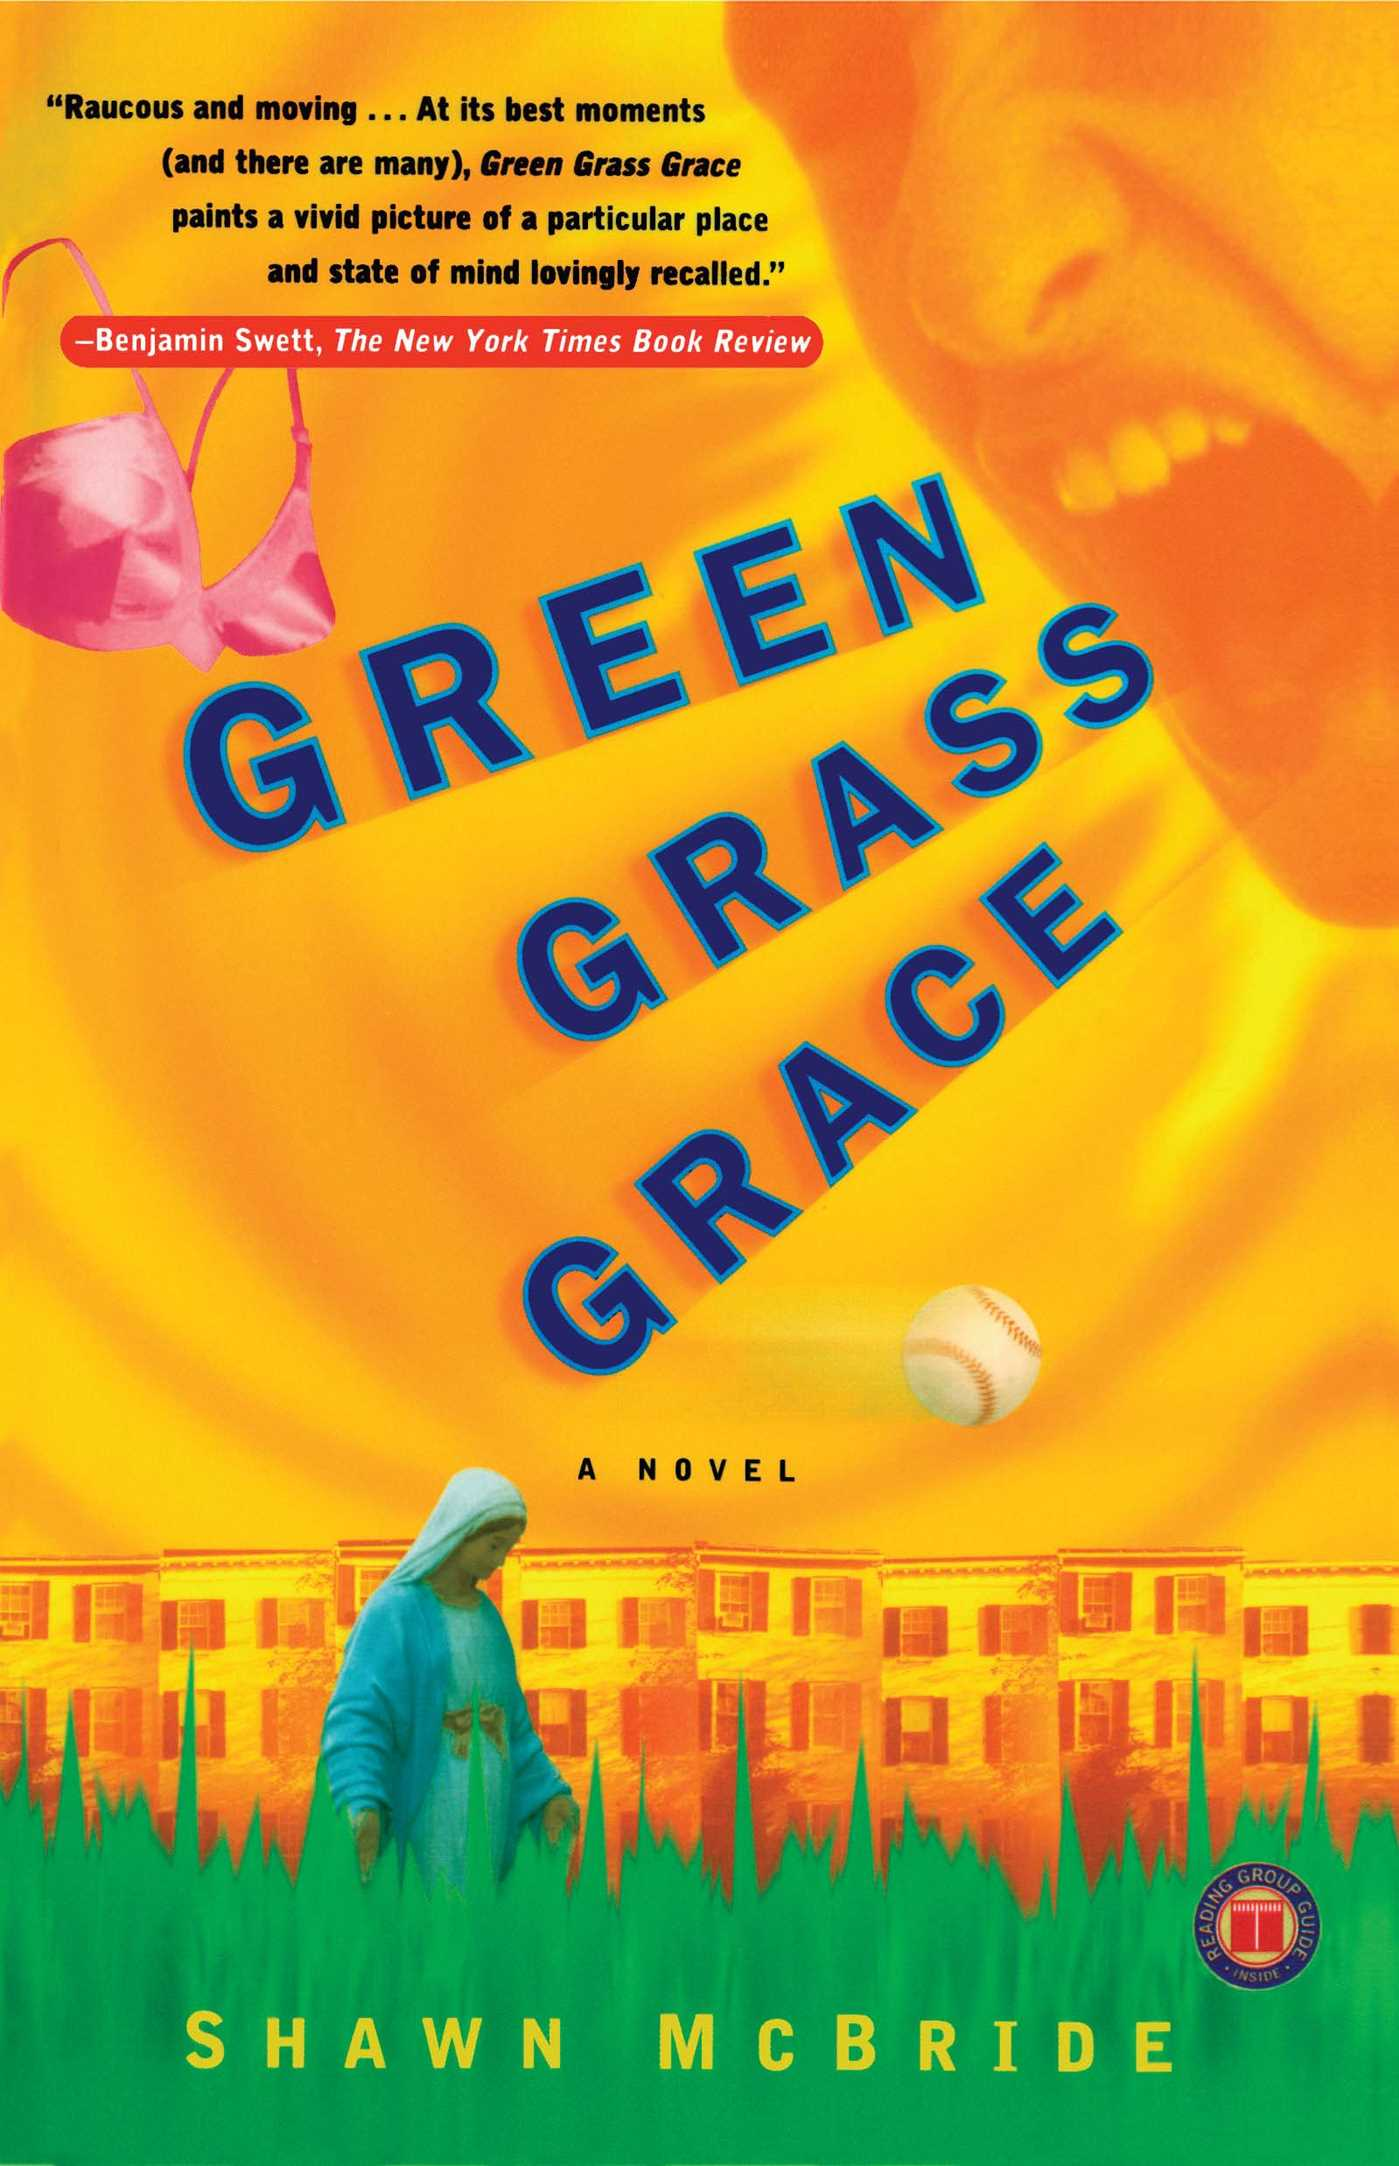 Green-grass-grace-9780743223119_hr